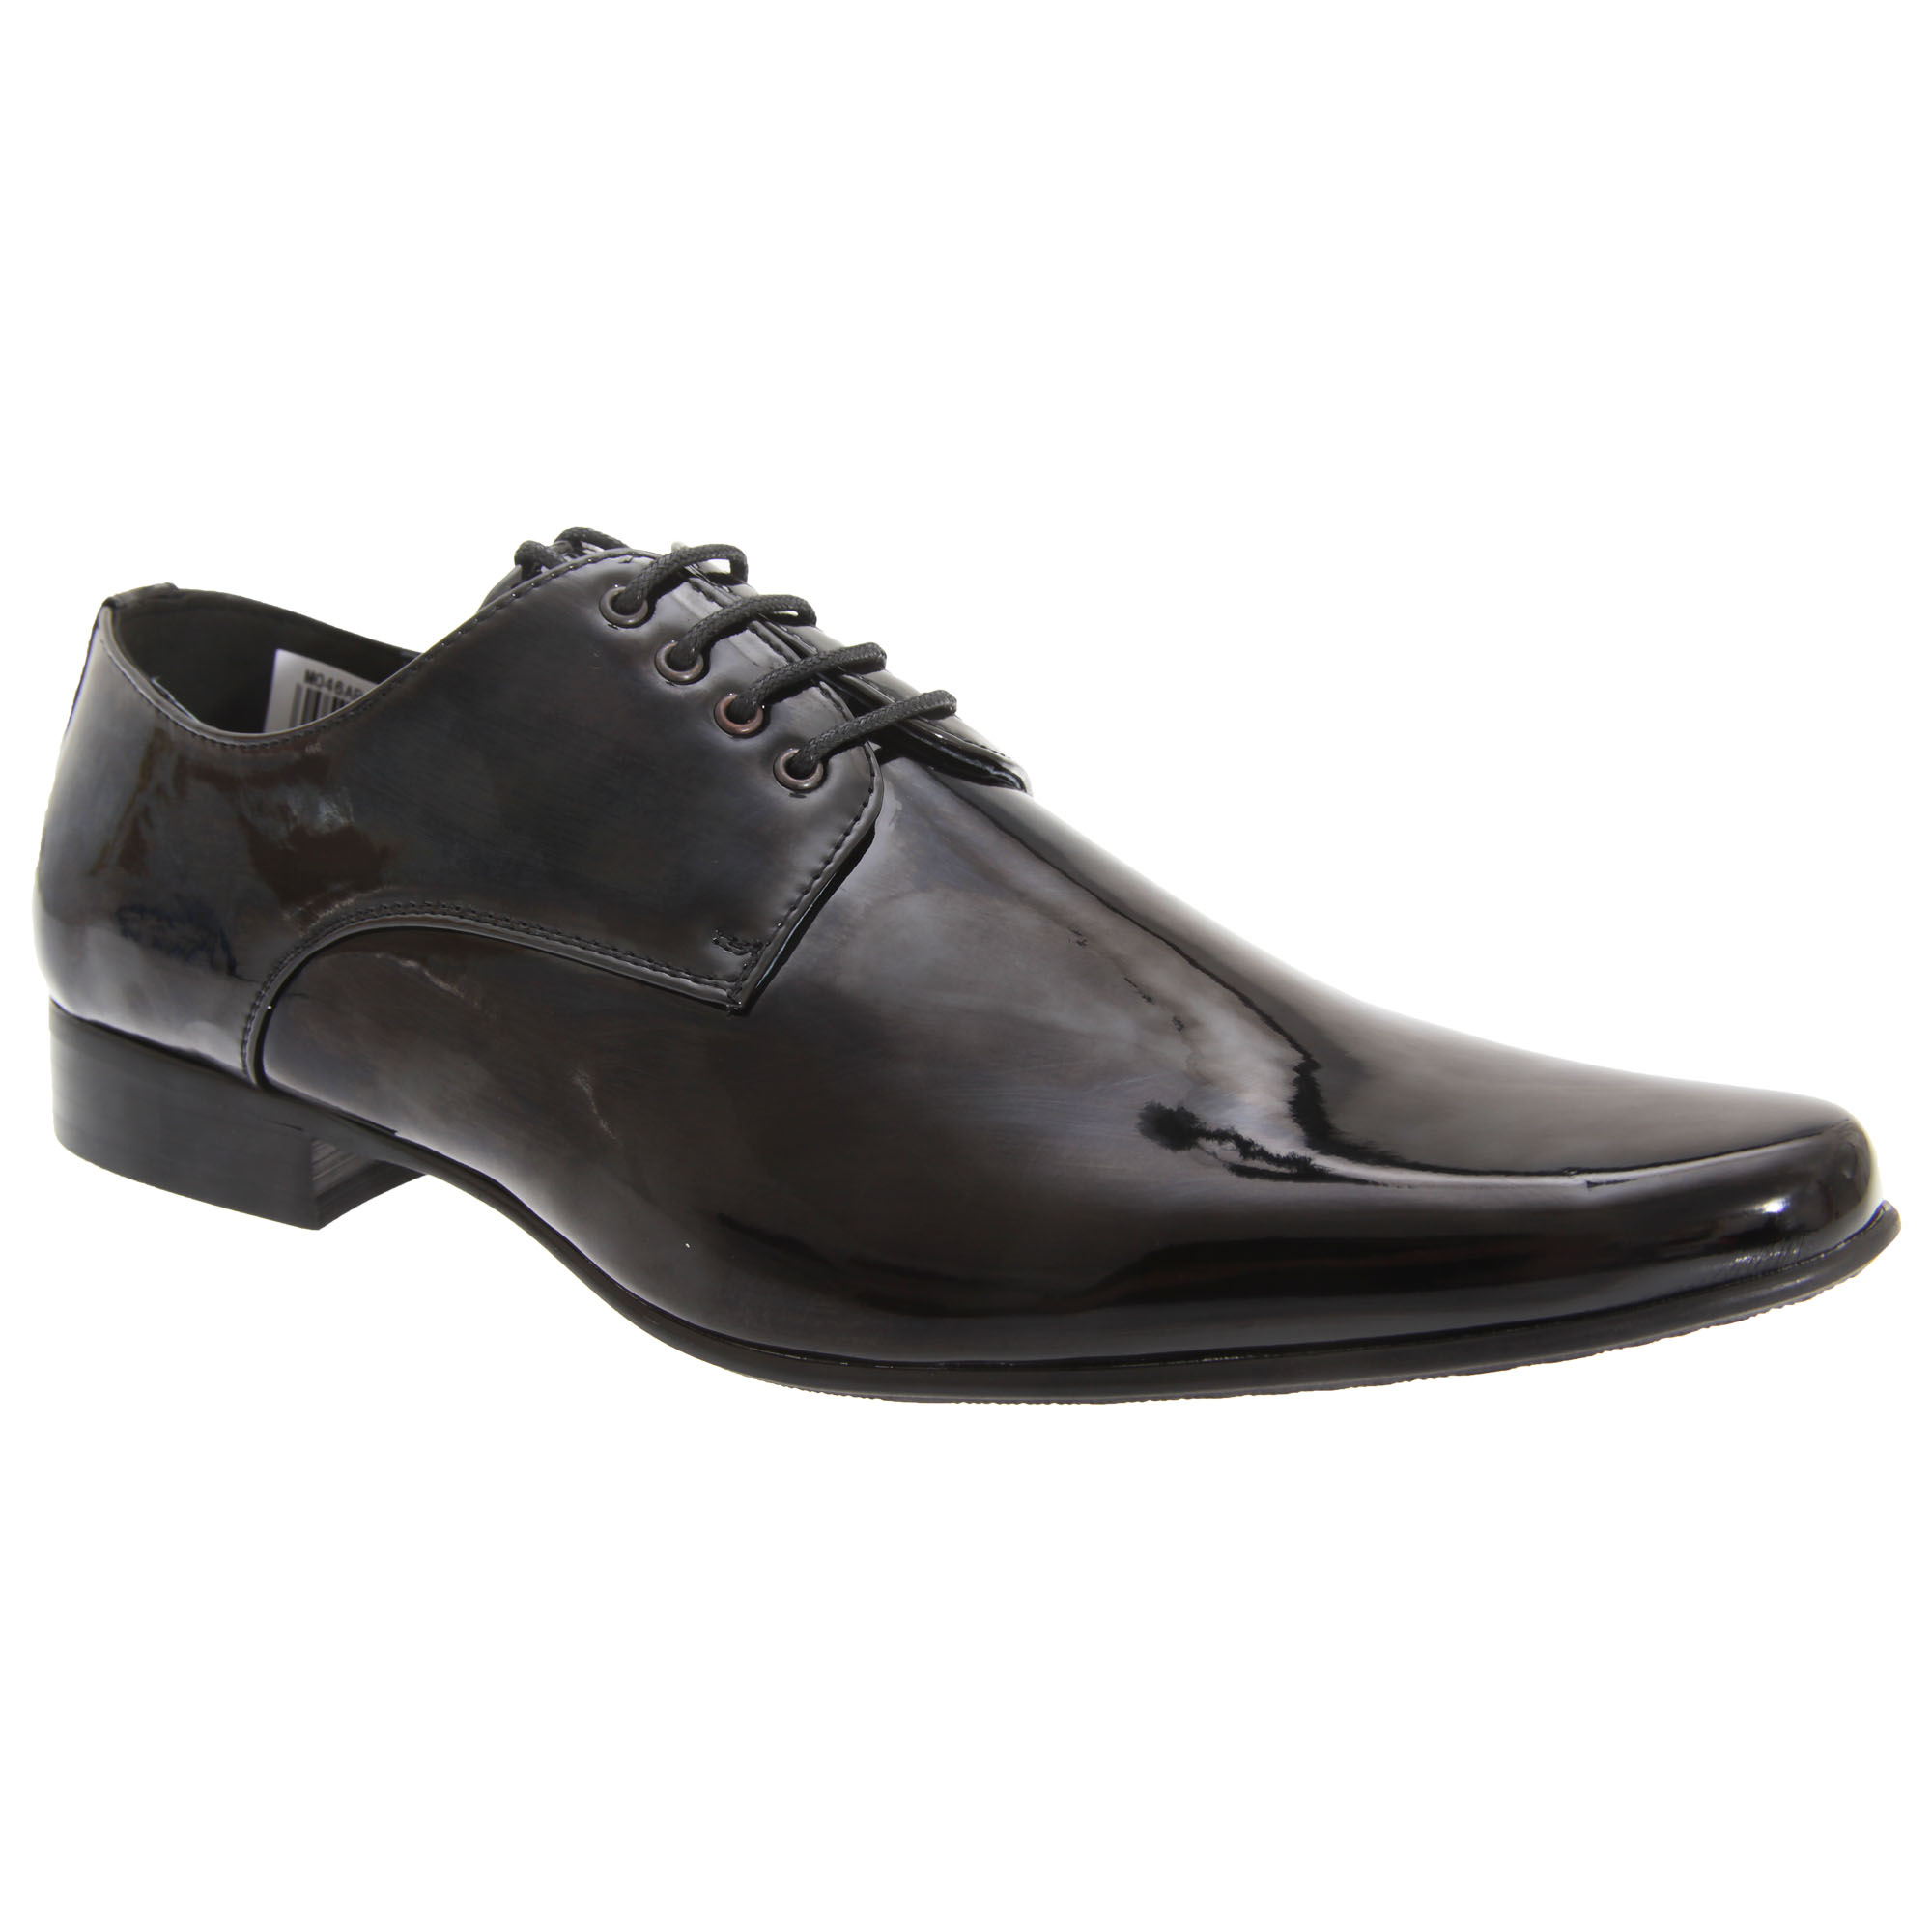 Goor Mens Patent Leather Lace-Up Chisel Toe Gibson Dress Shoes (13 UK) (Black Patent)